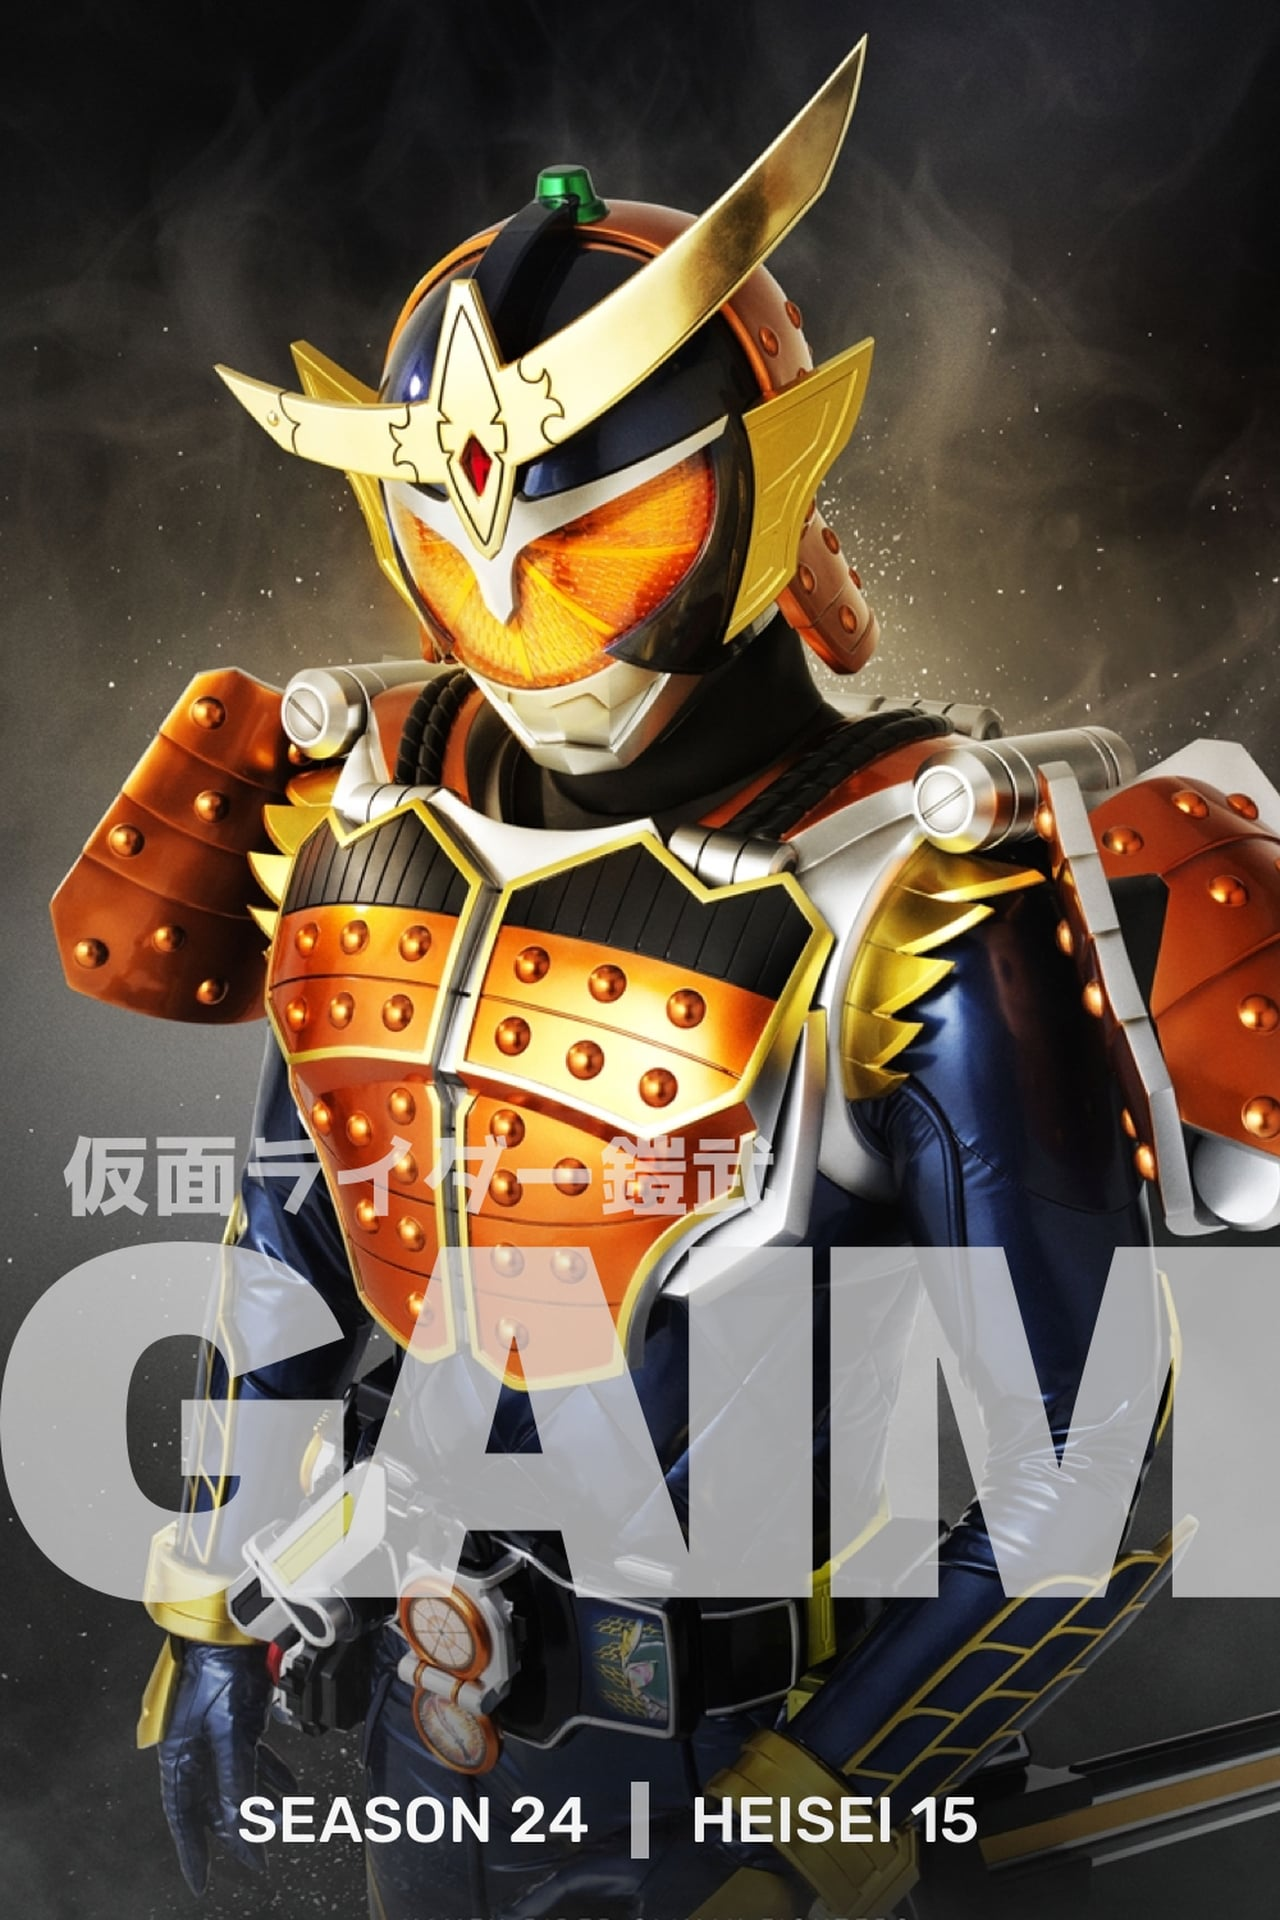 Watch Kamen Rider Season 24 Online